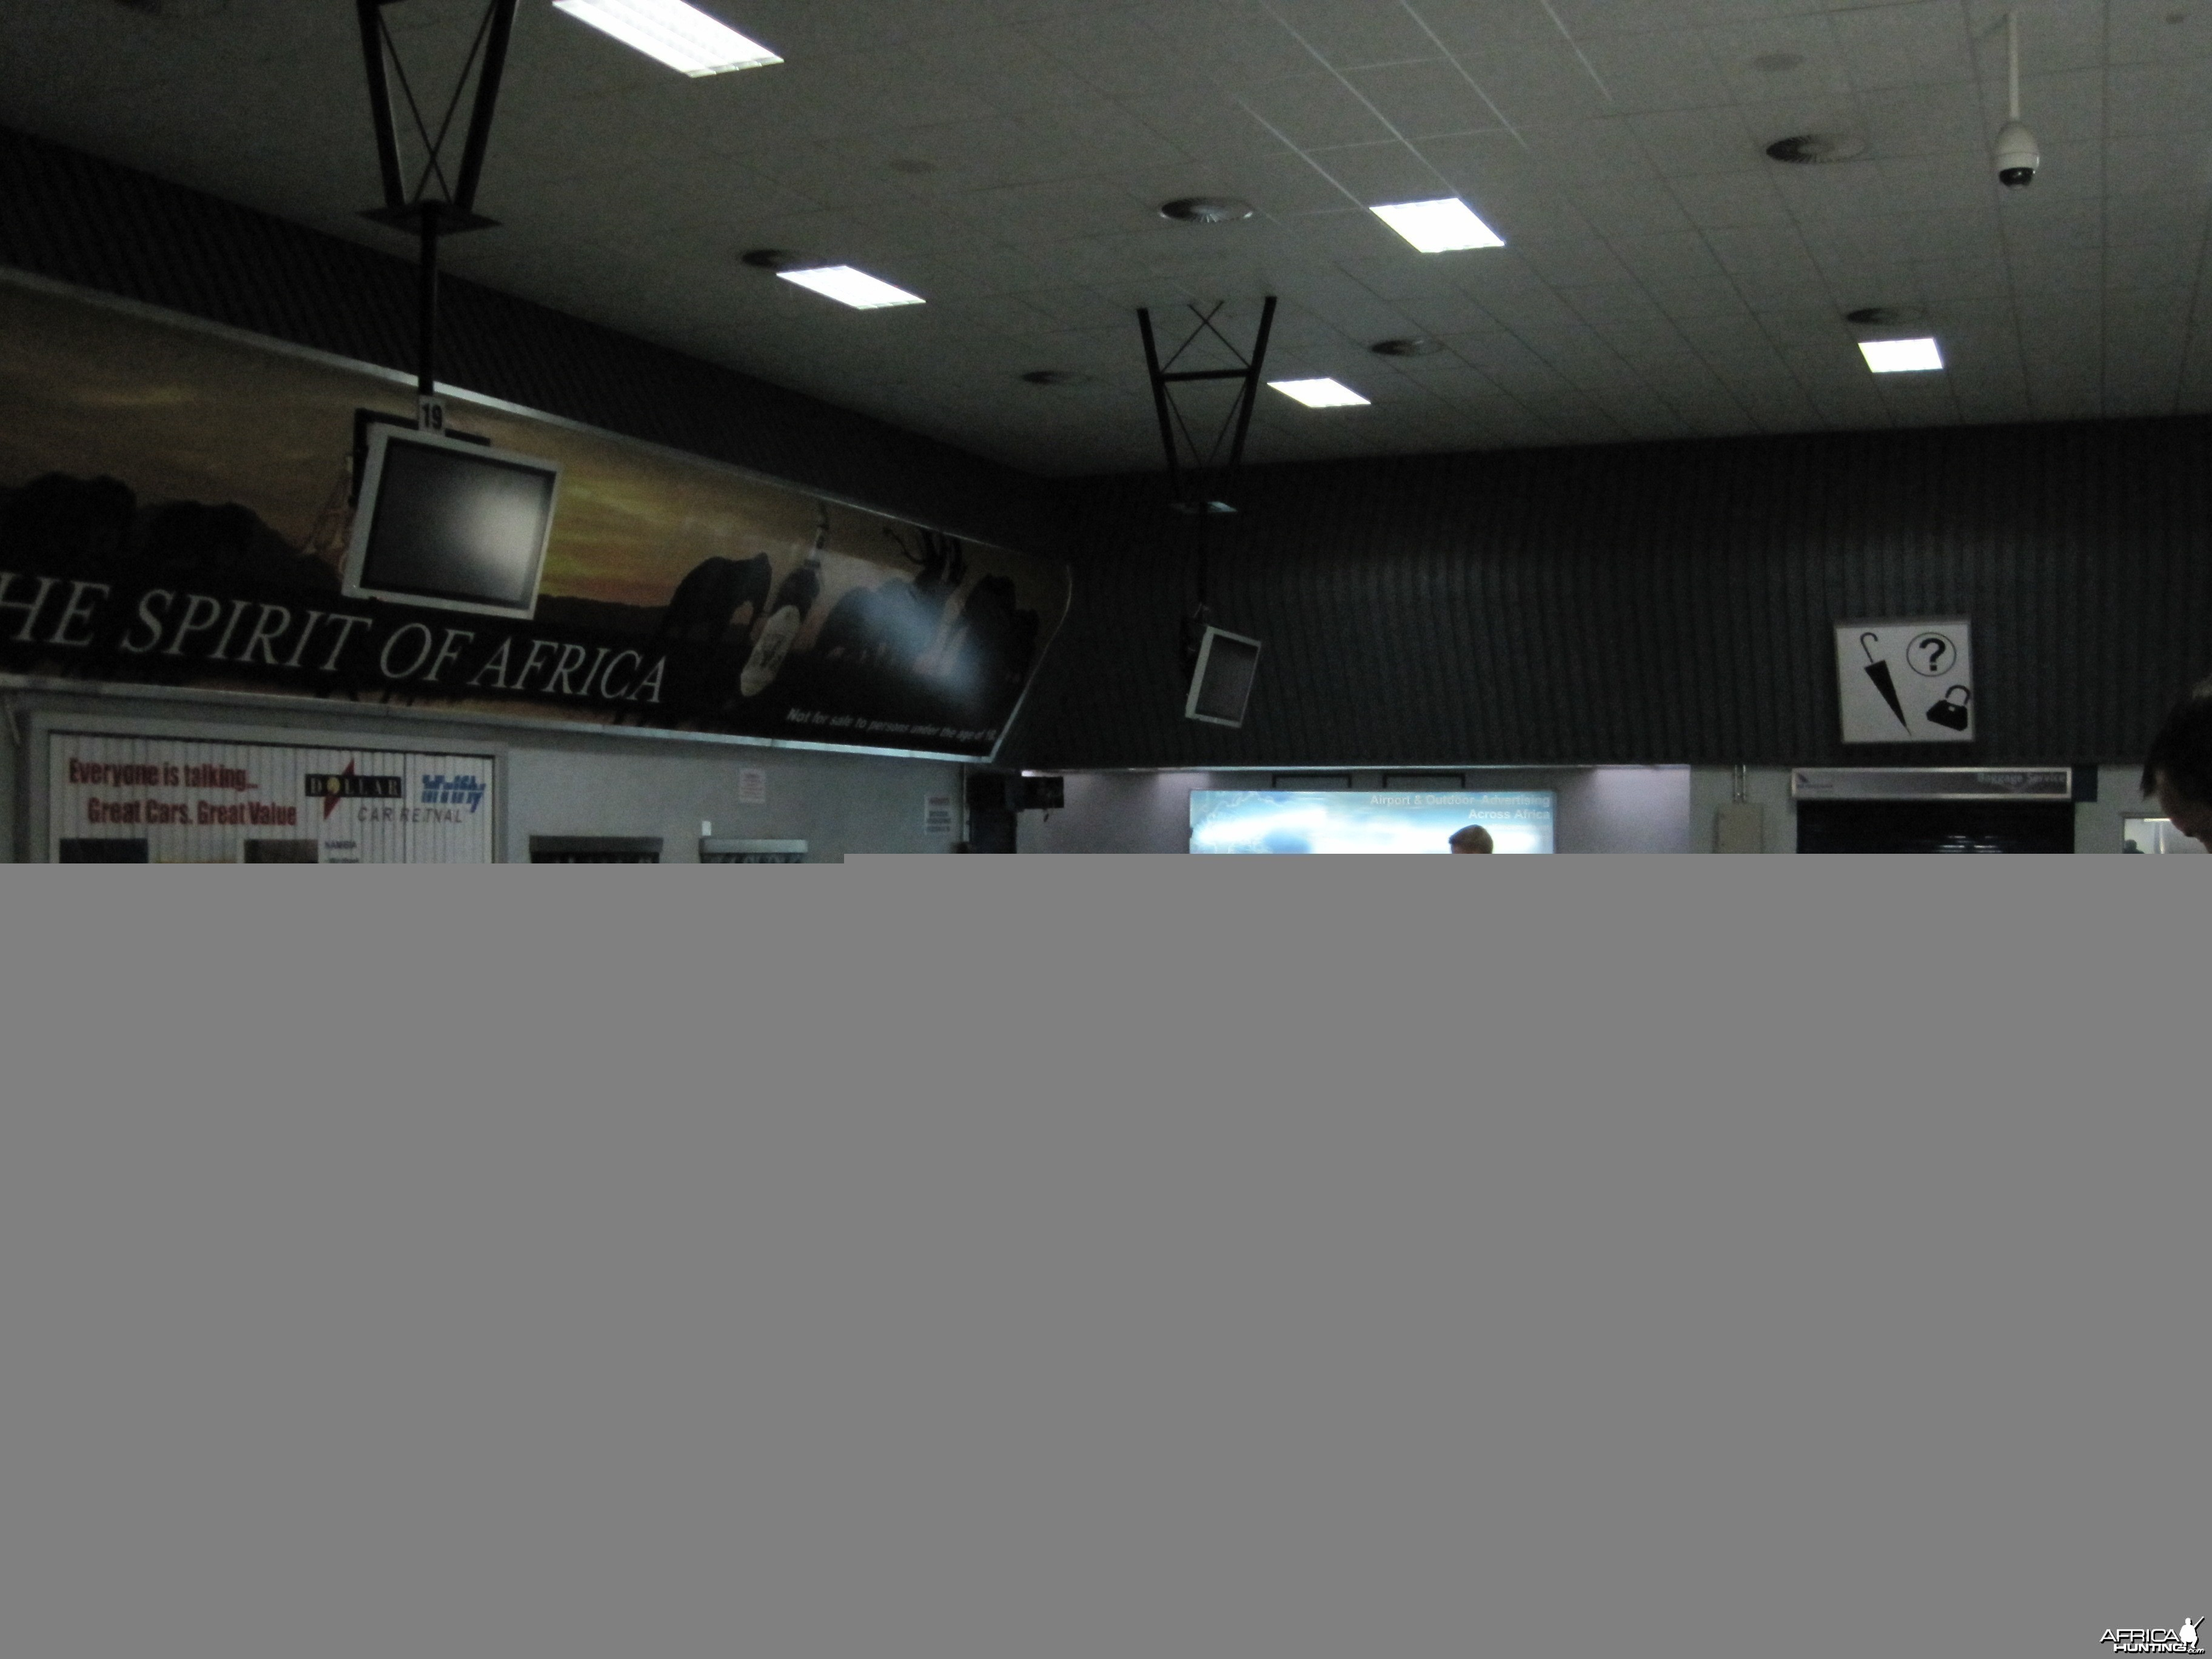 Baggage claim area at the International Airport in Windhoek, Namibia